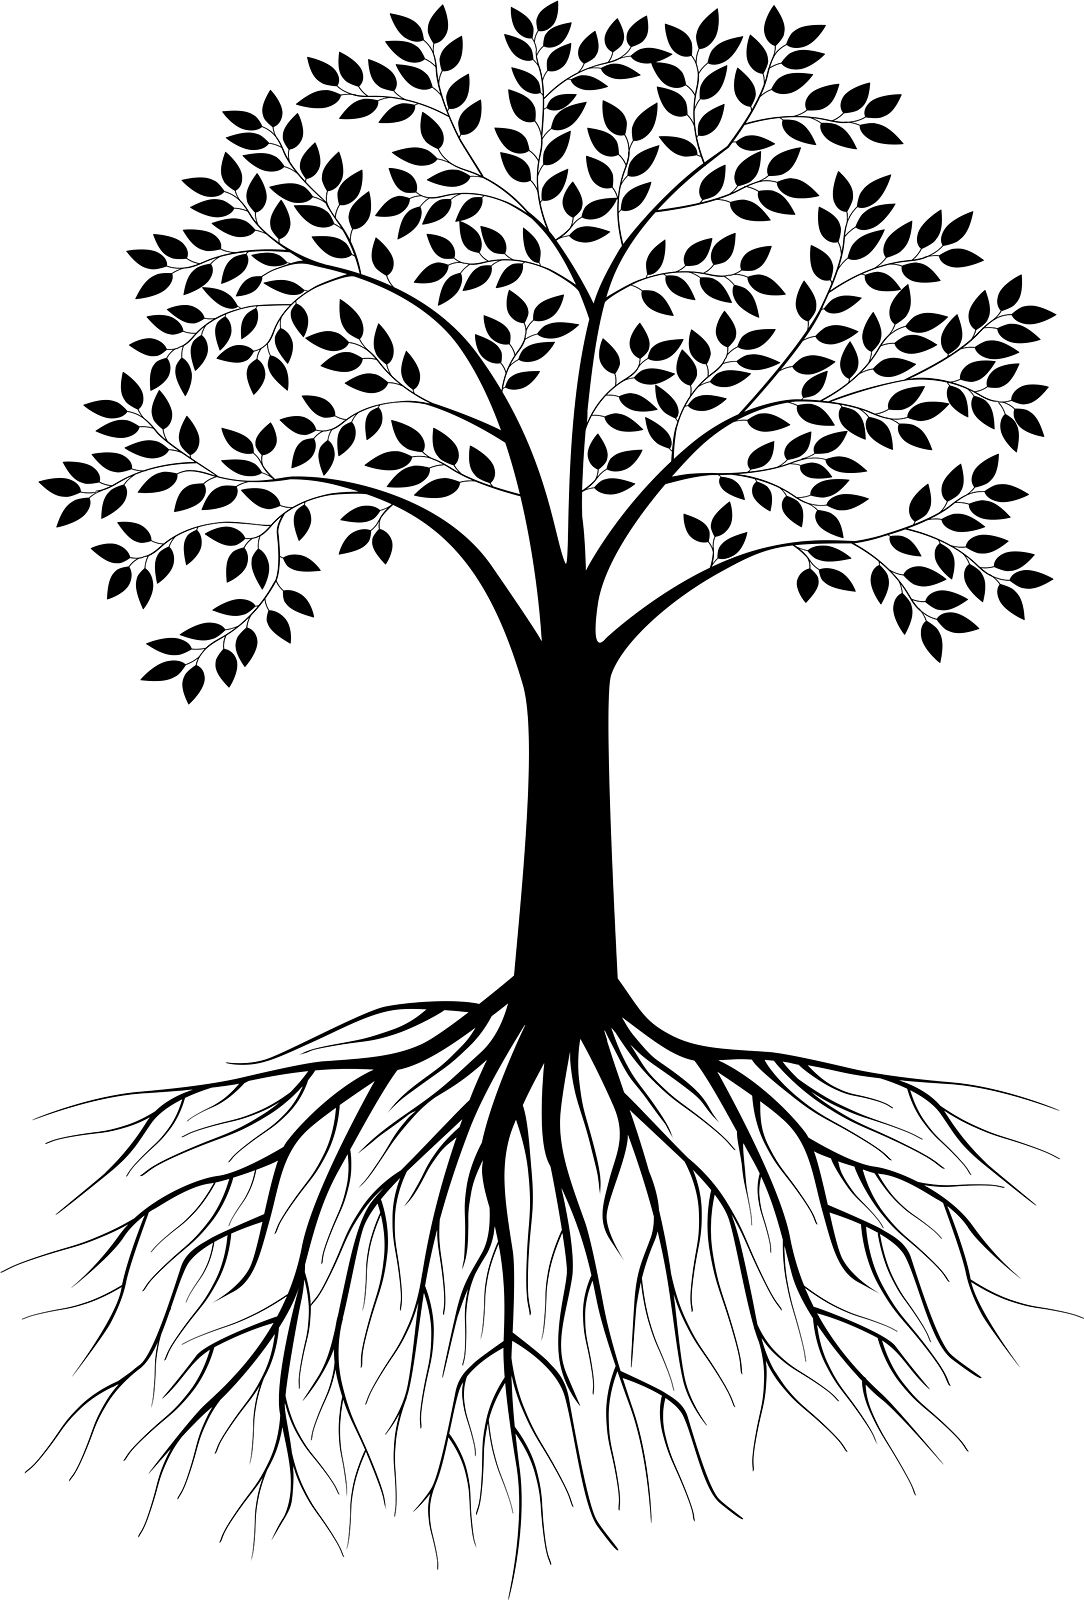 Tree with roots clipart black and white 3 » Clipart Station.